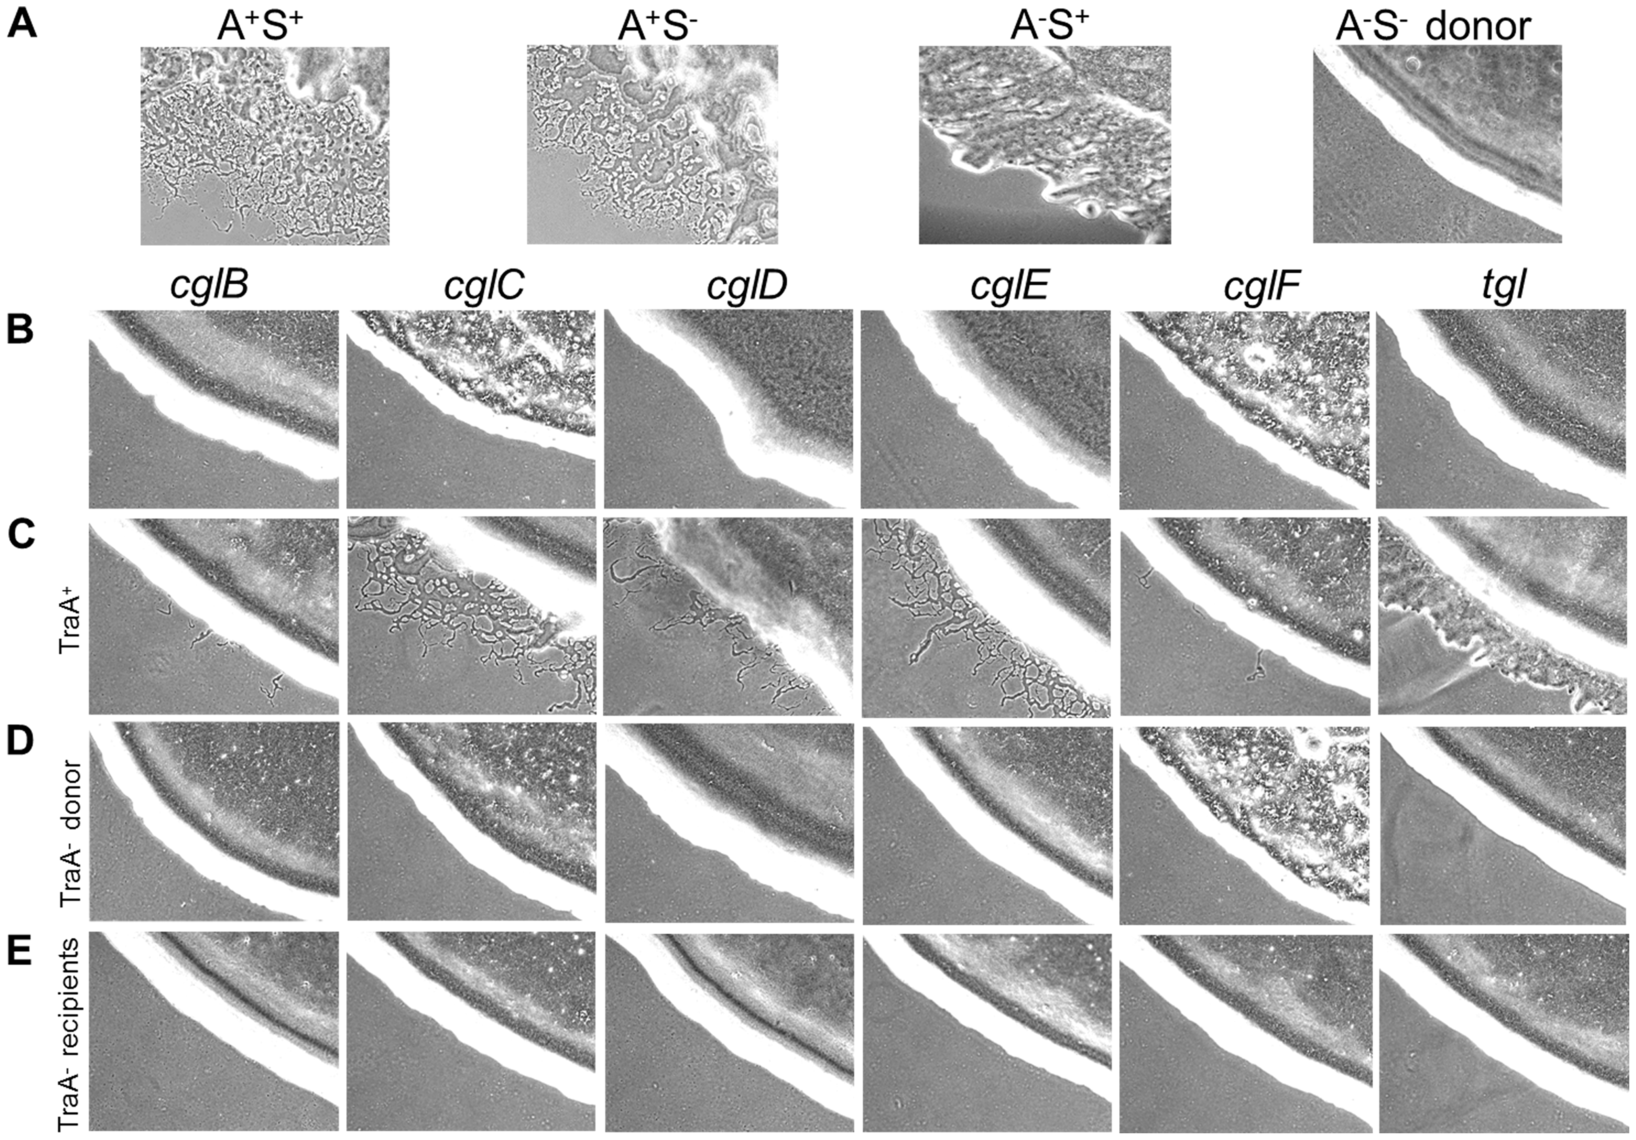 Stimulation of gliding motility depends on TraA.